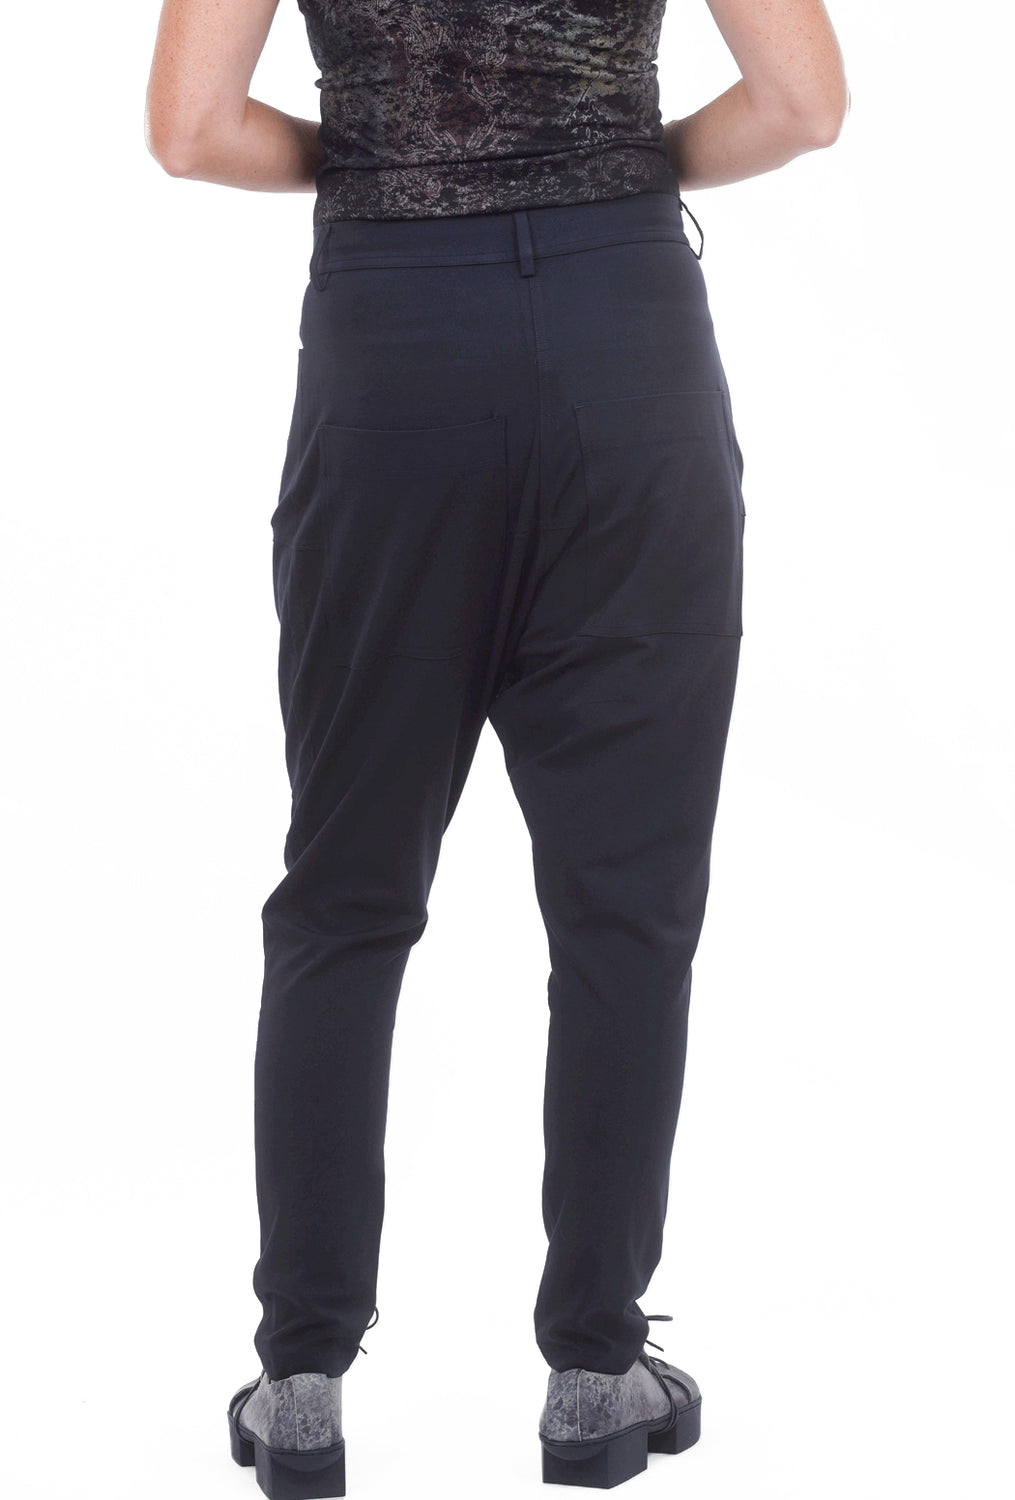 Rundholz Black Label Fused Jersey ER Pants, Steel